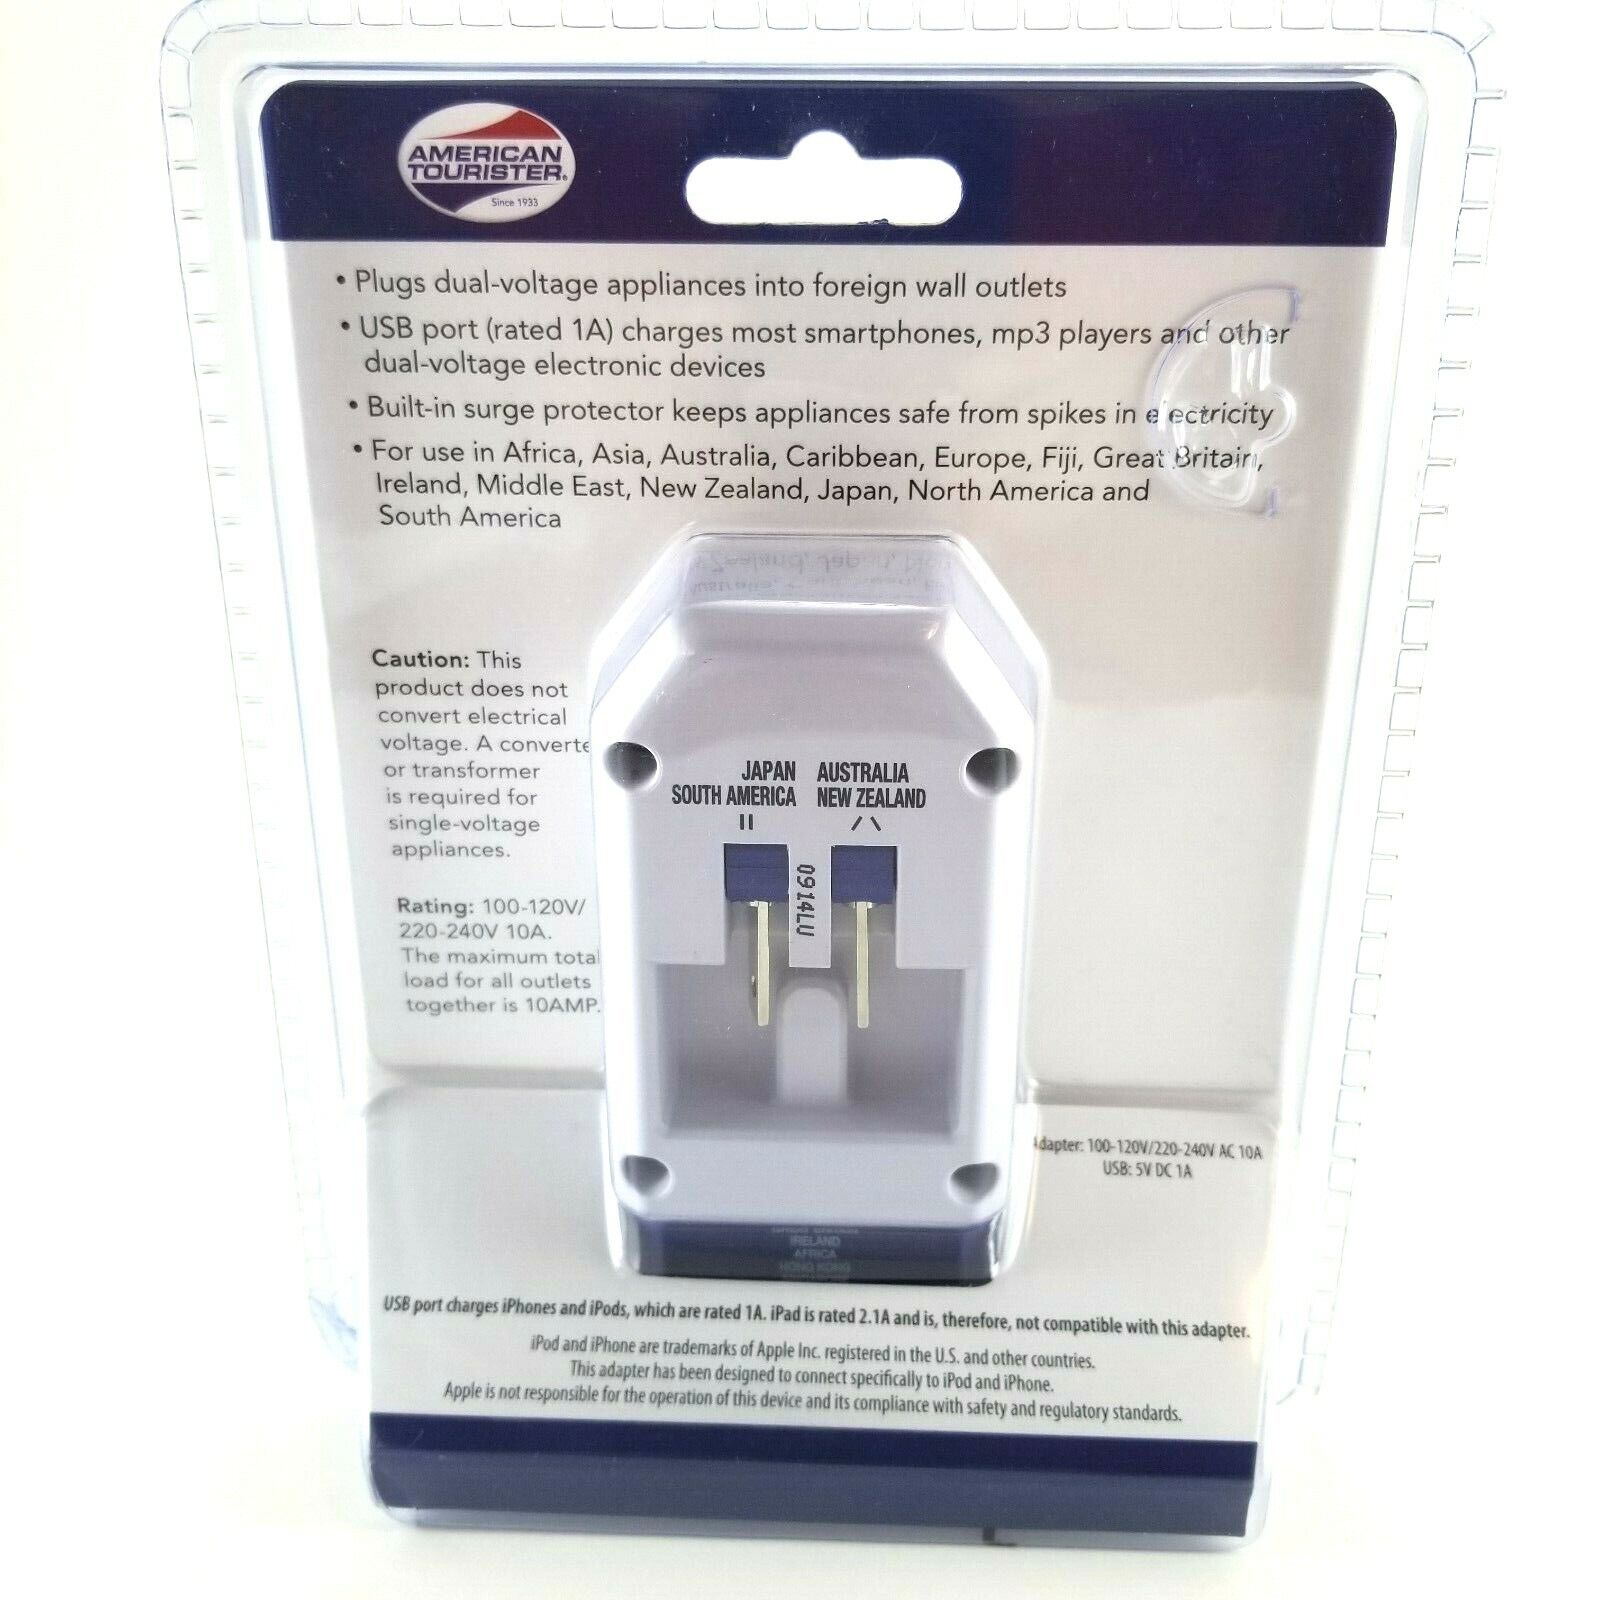 American Tourister All-in-one International Adapter plug with 3 outlets and USB 1